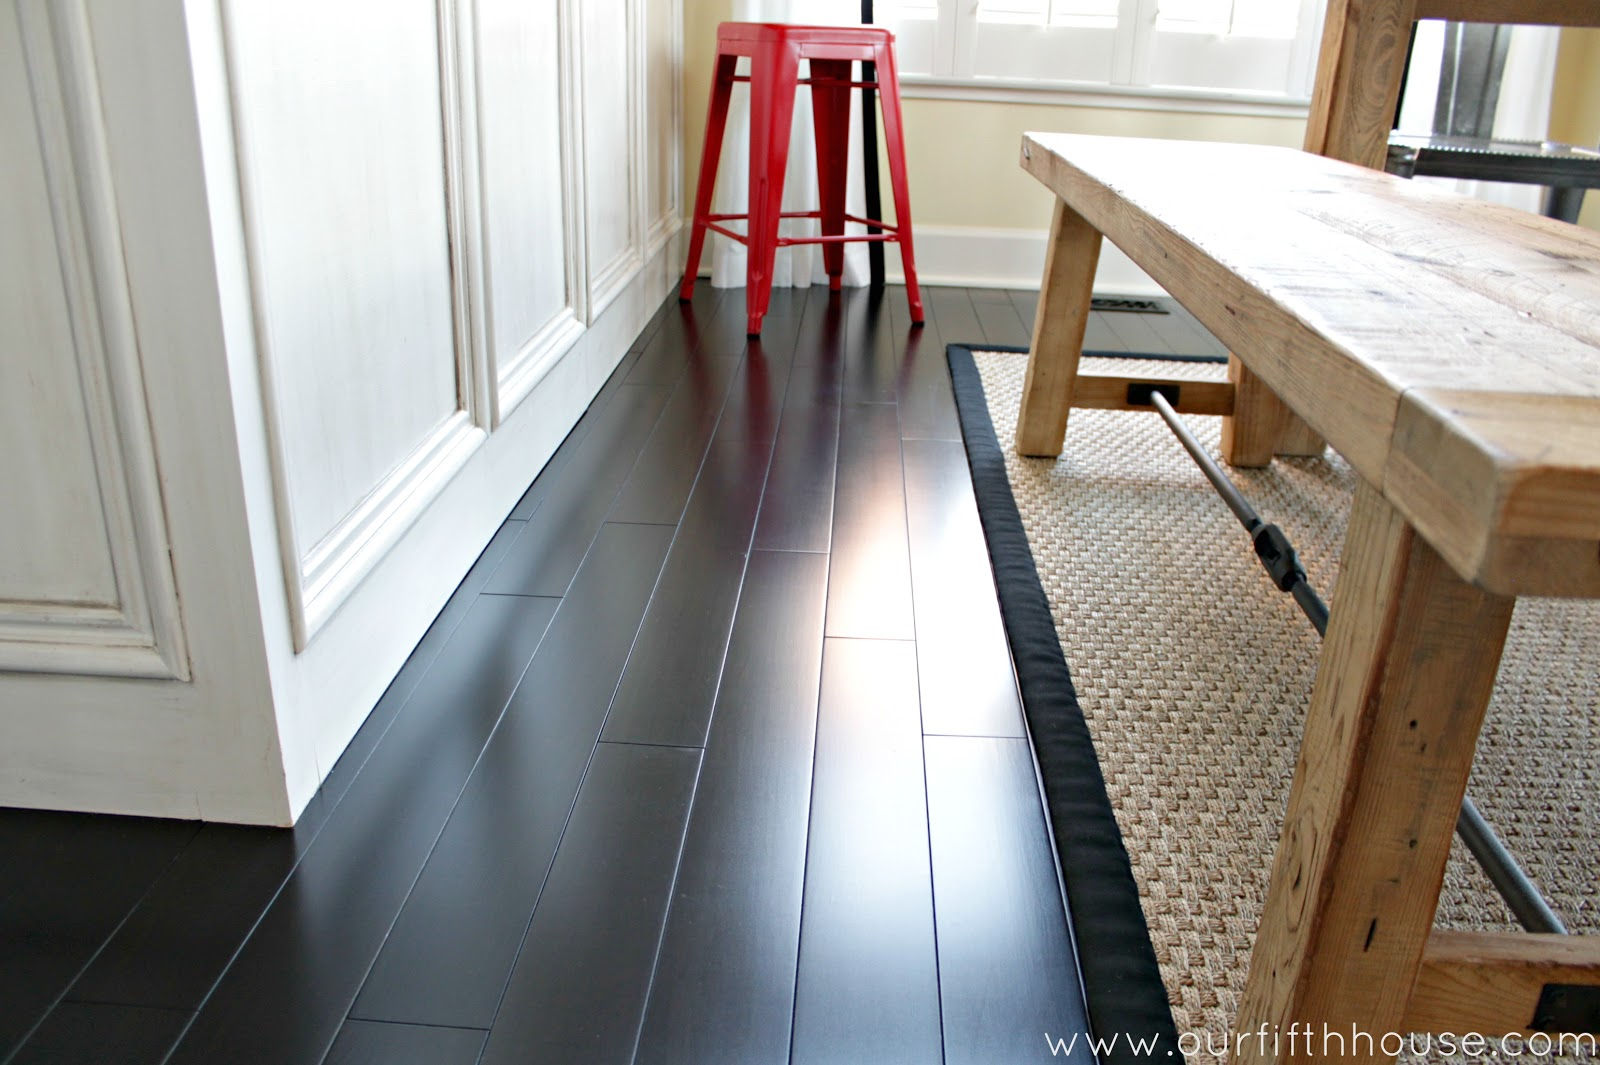 Dark Laminate Flooring In Kitchen How To Clean Dark Wood Floors Our Fifth House